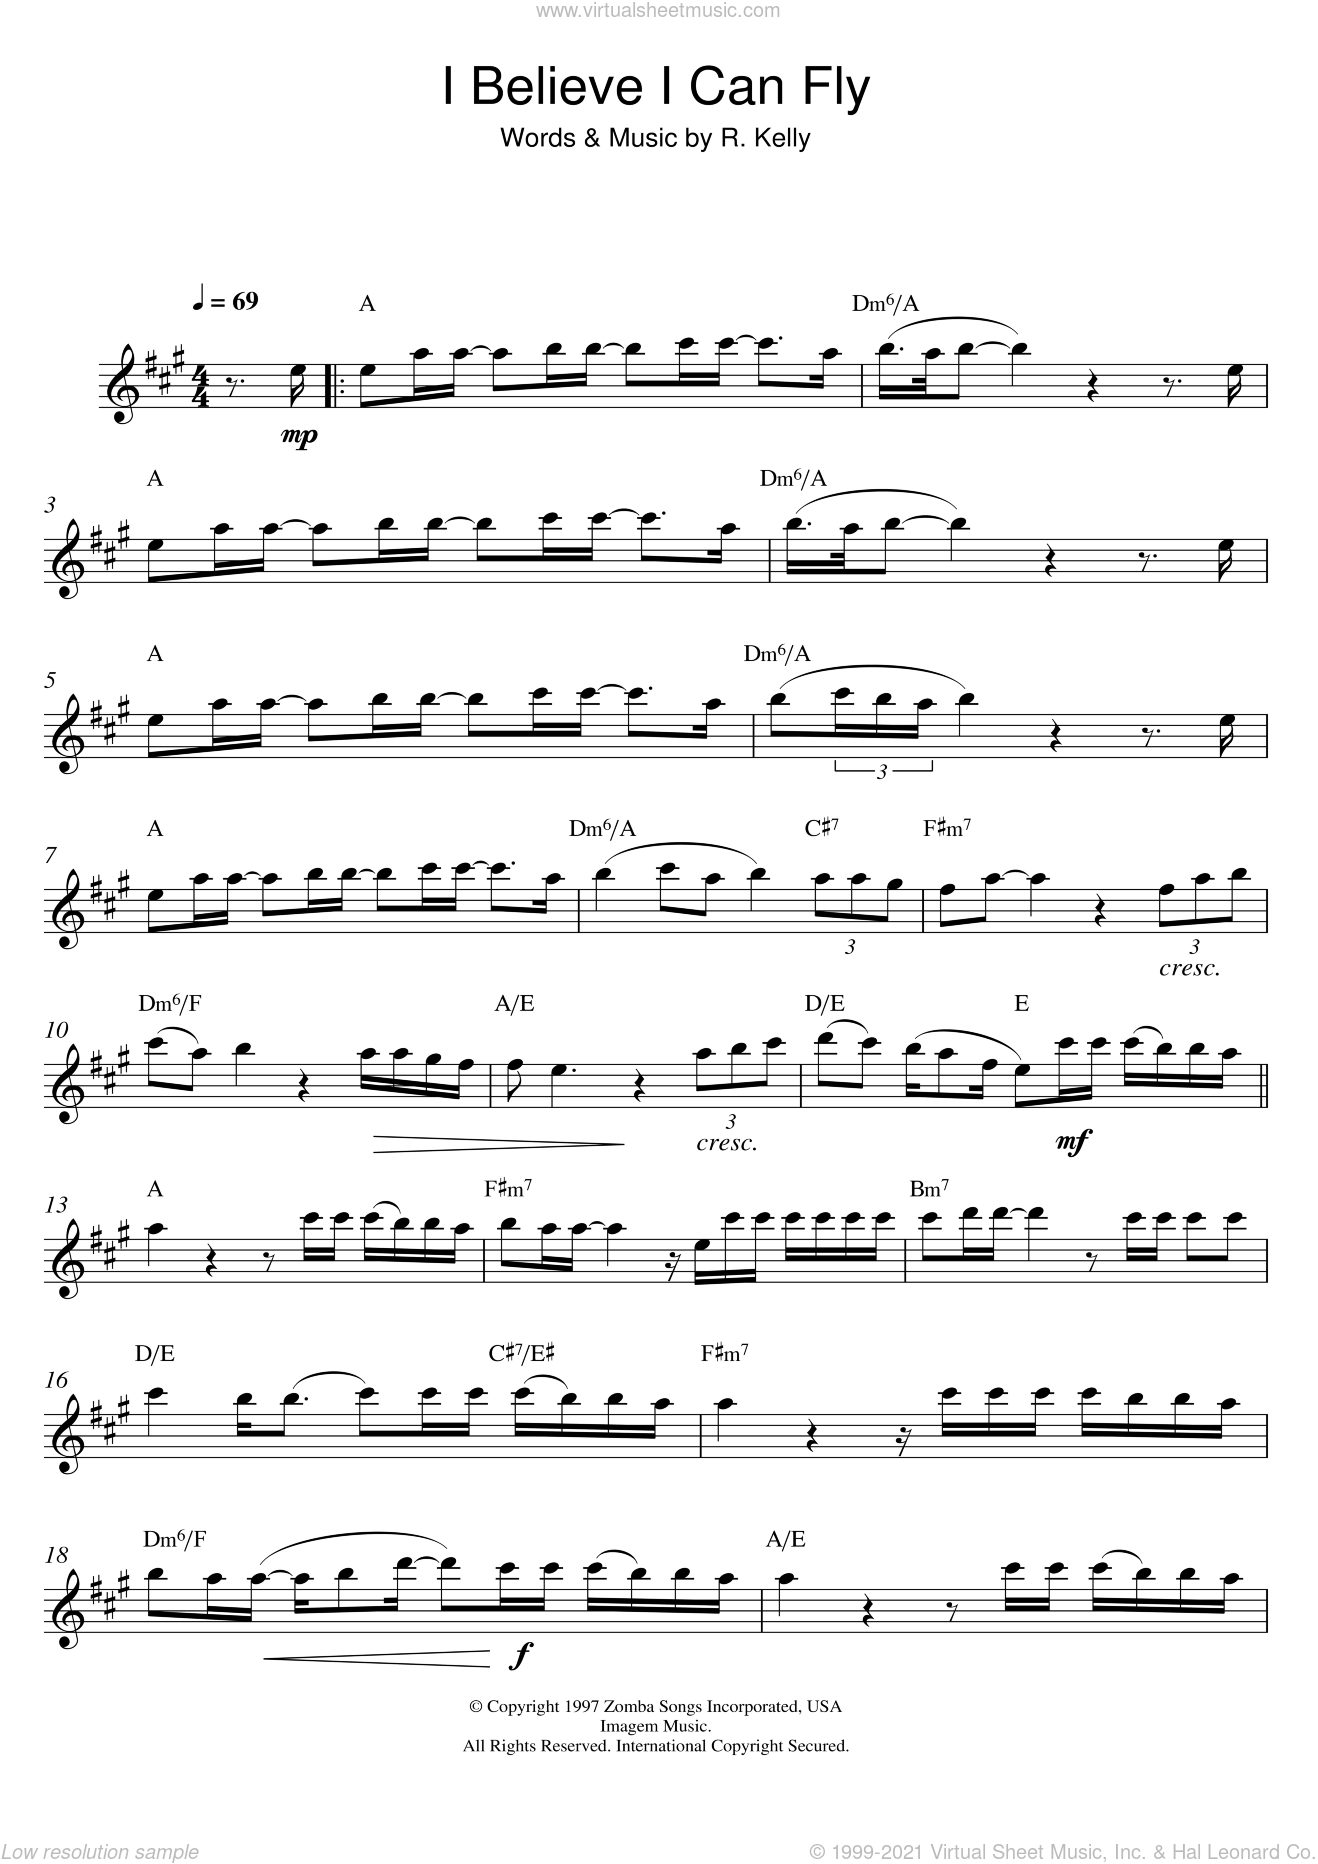 I Believe I Can Fly sheet music for alto saxophone solo by Robert Kelly, intermediate. Score Image Preview.